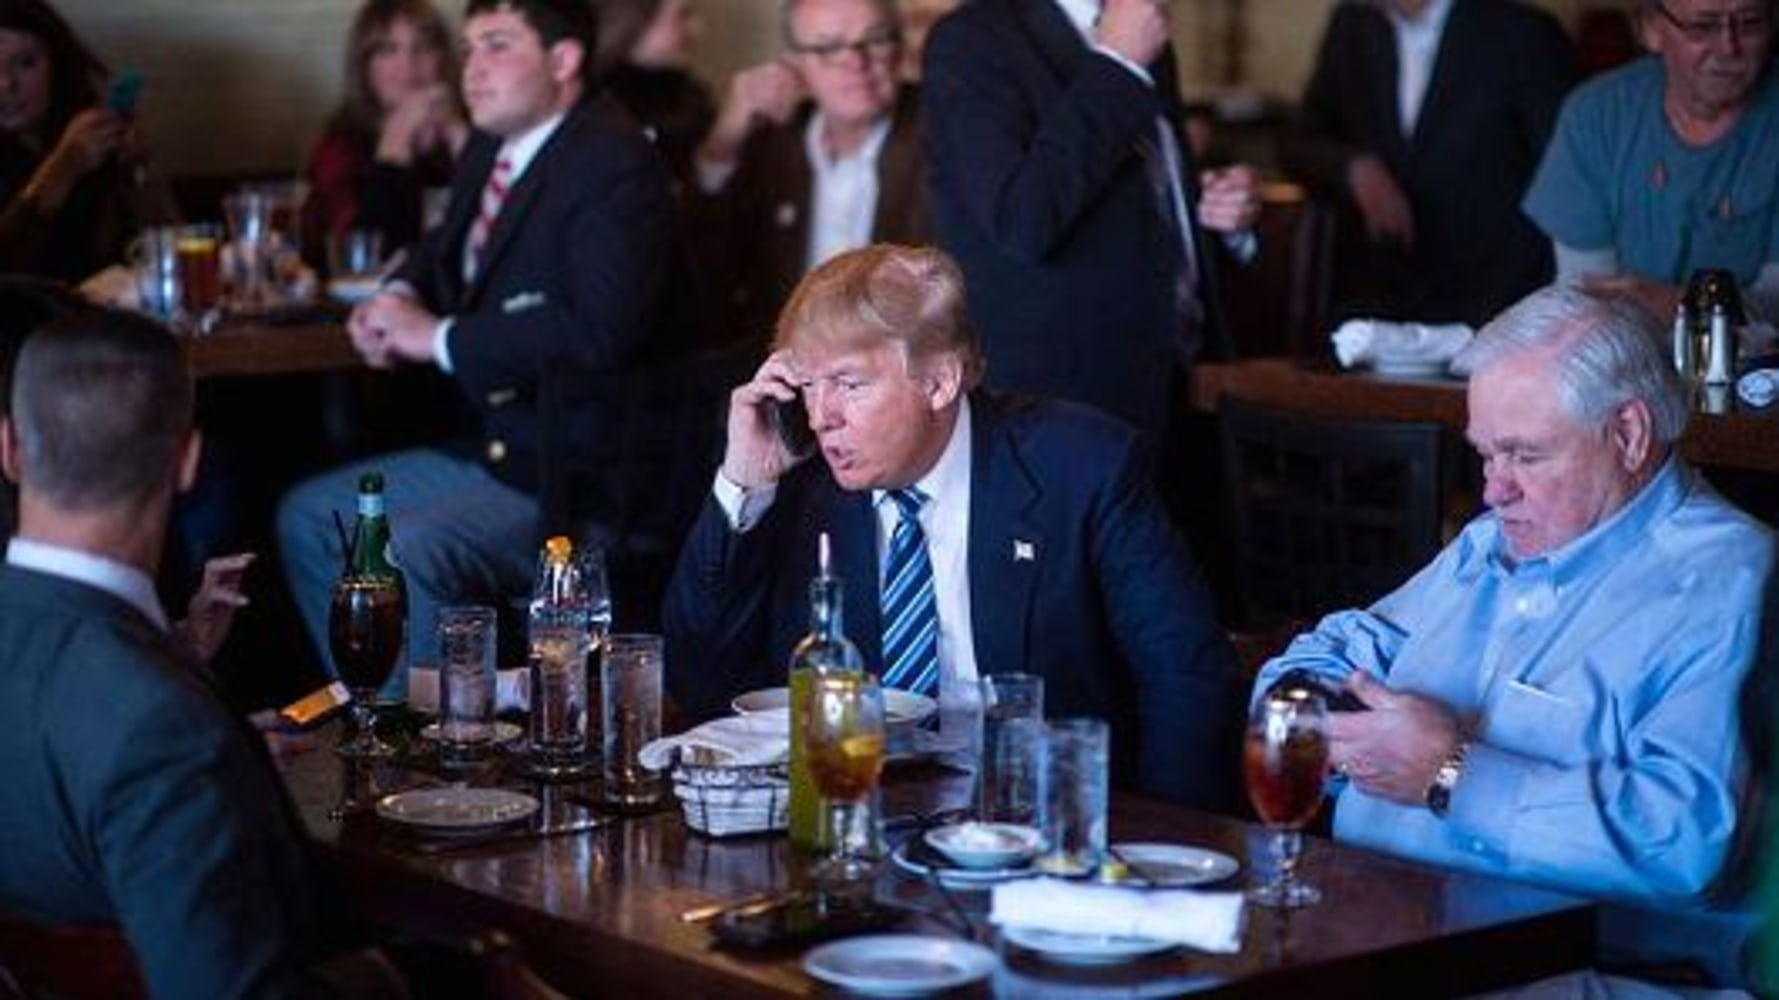 Donald Trump is using an iPhone now